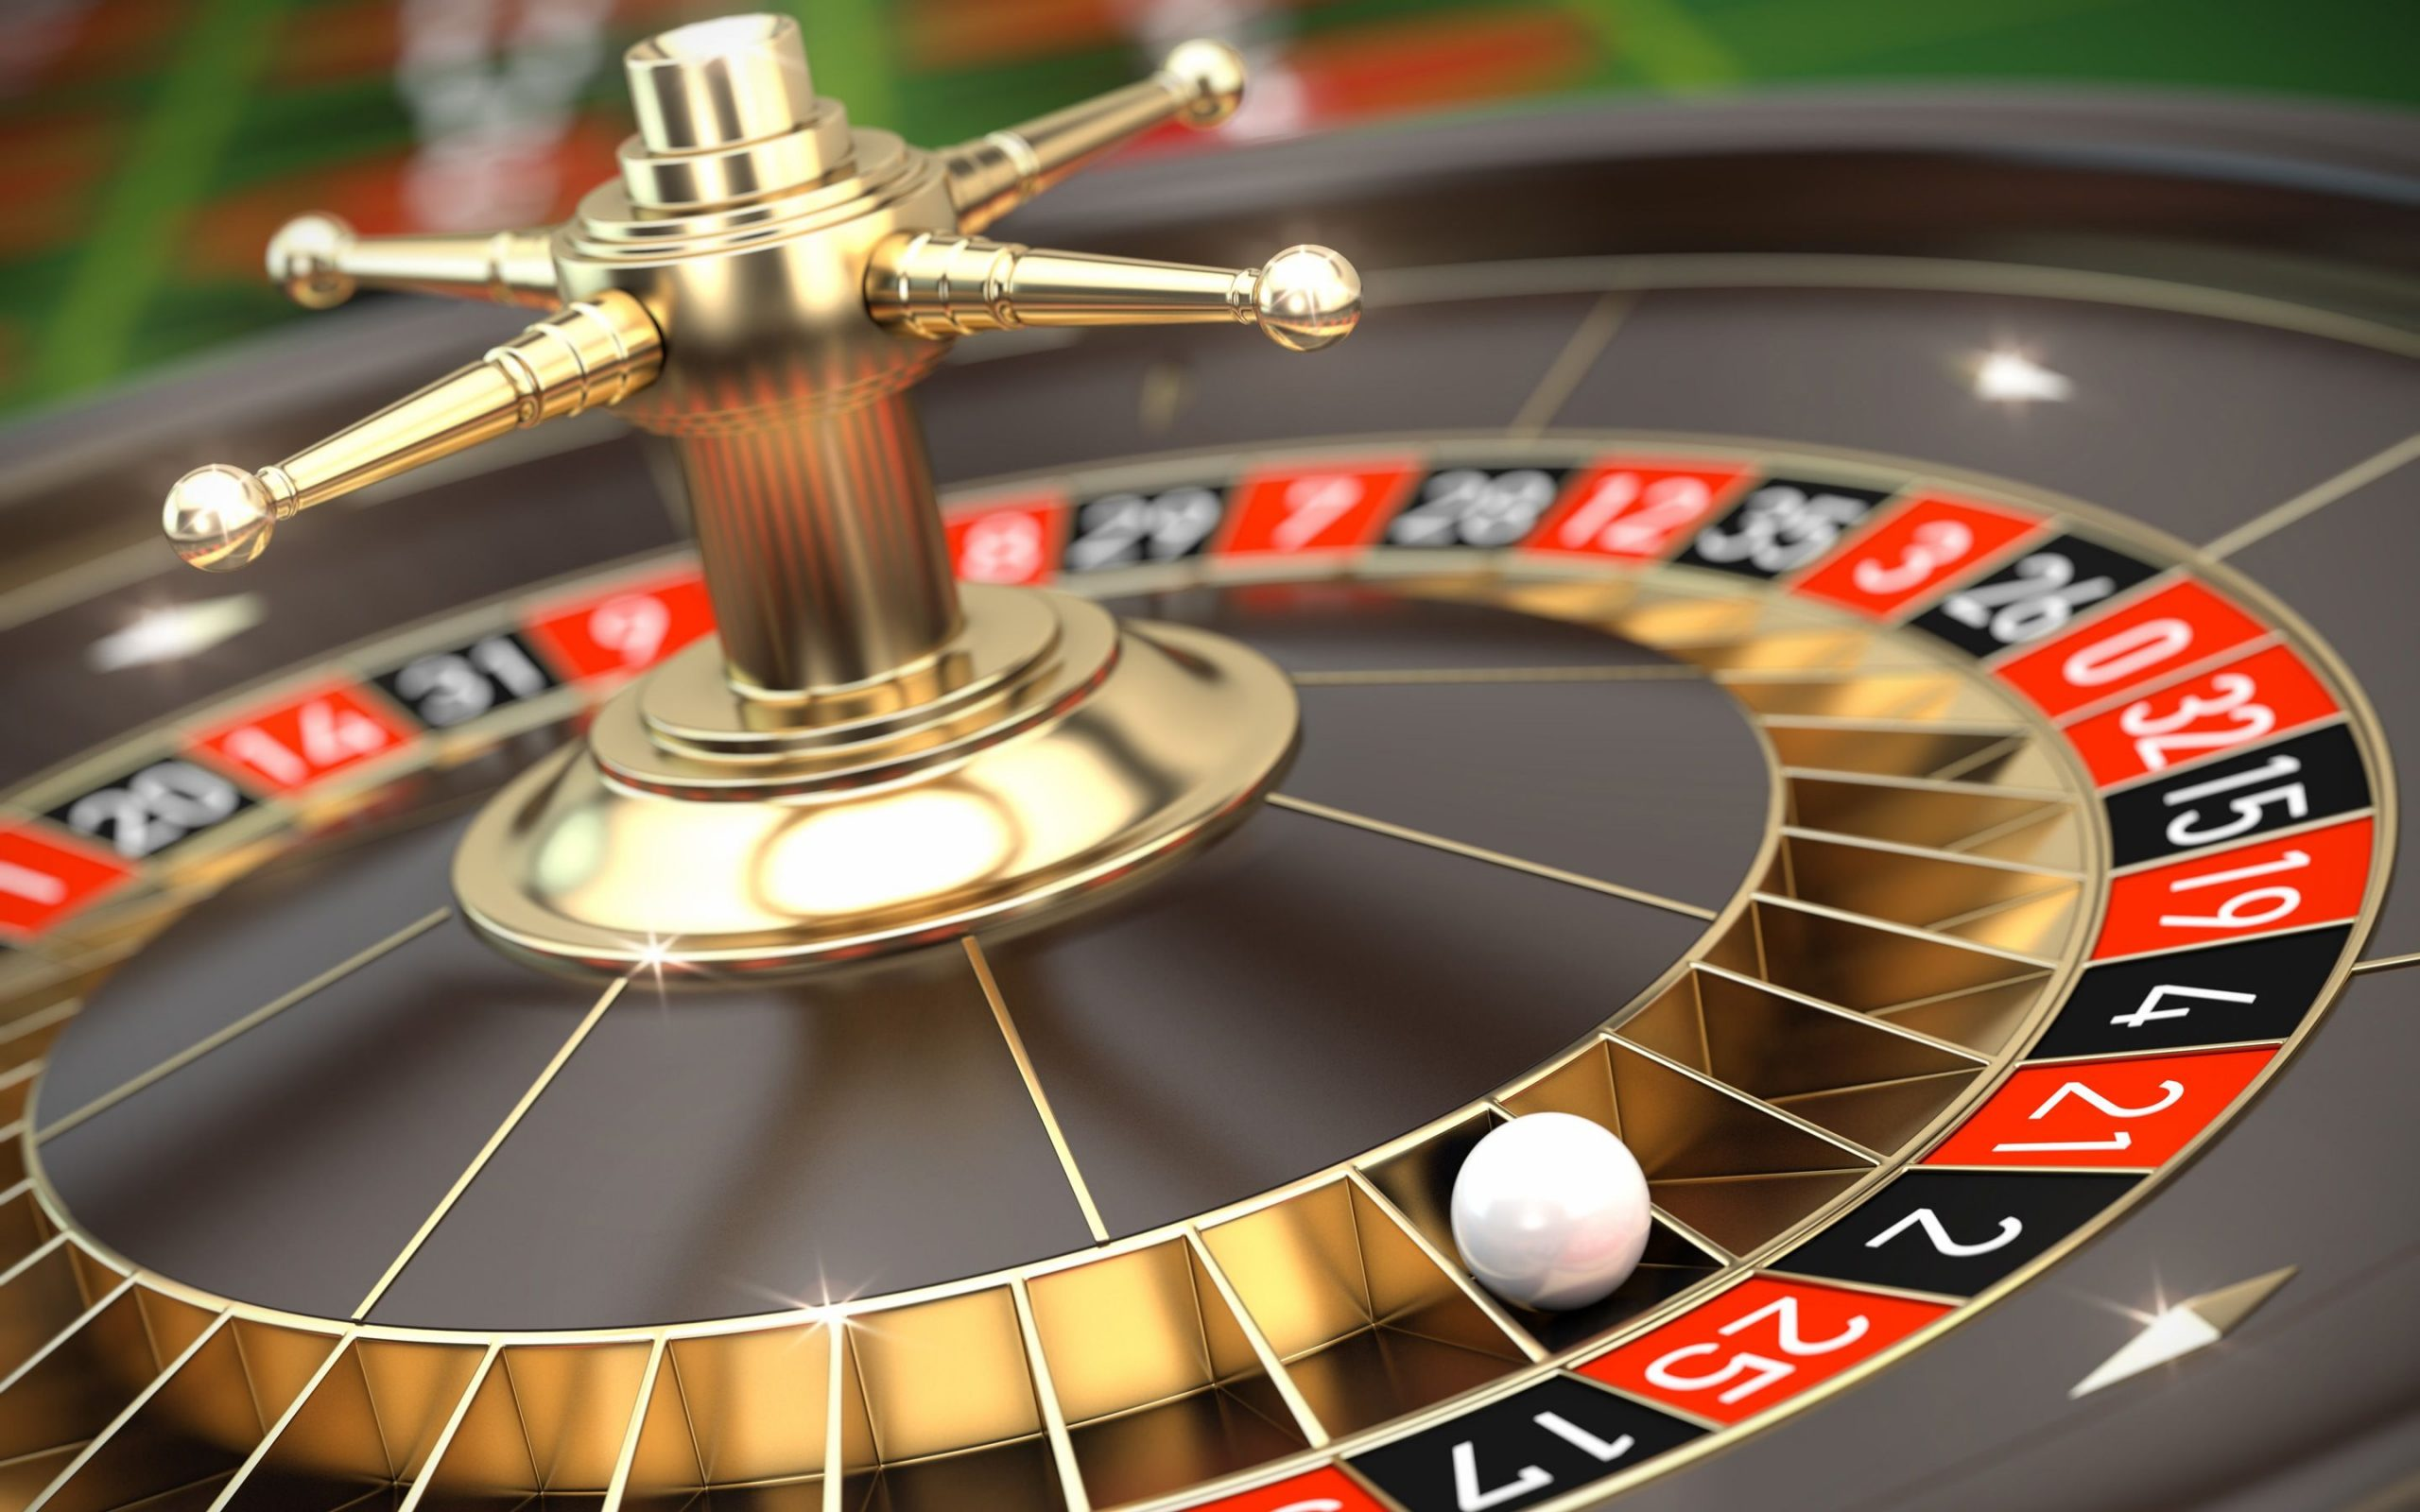 Roulette Cheats That Have Actually Worked For Me